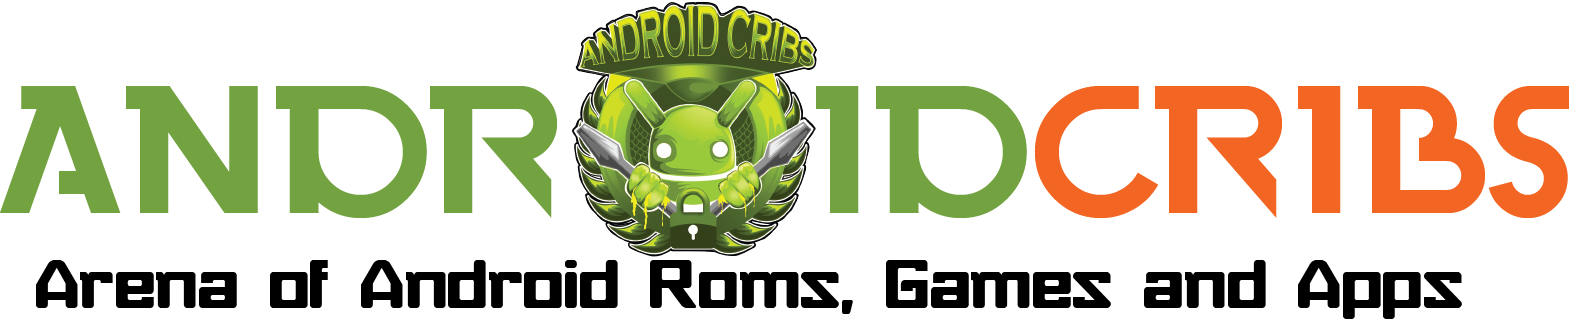 Androidcribs